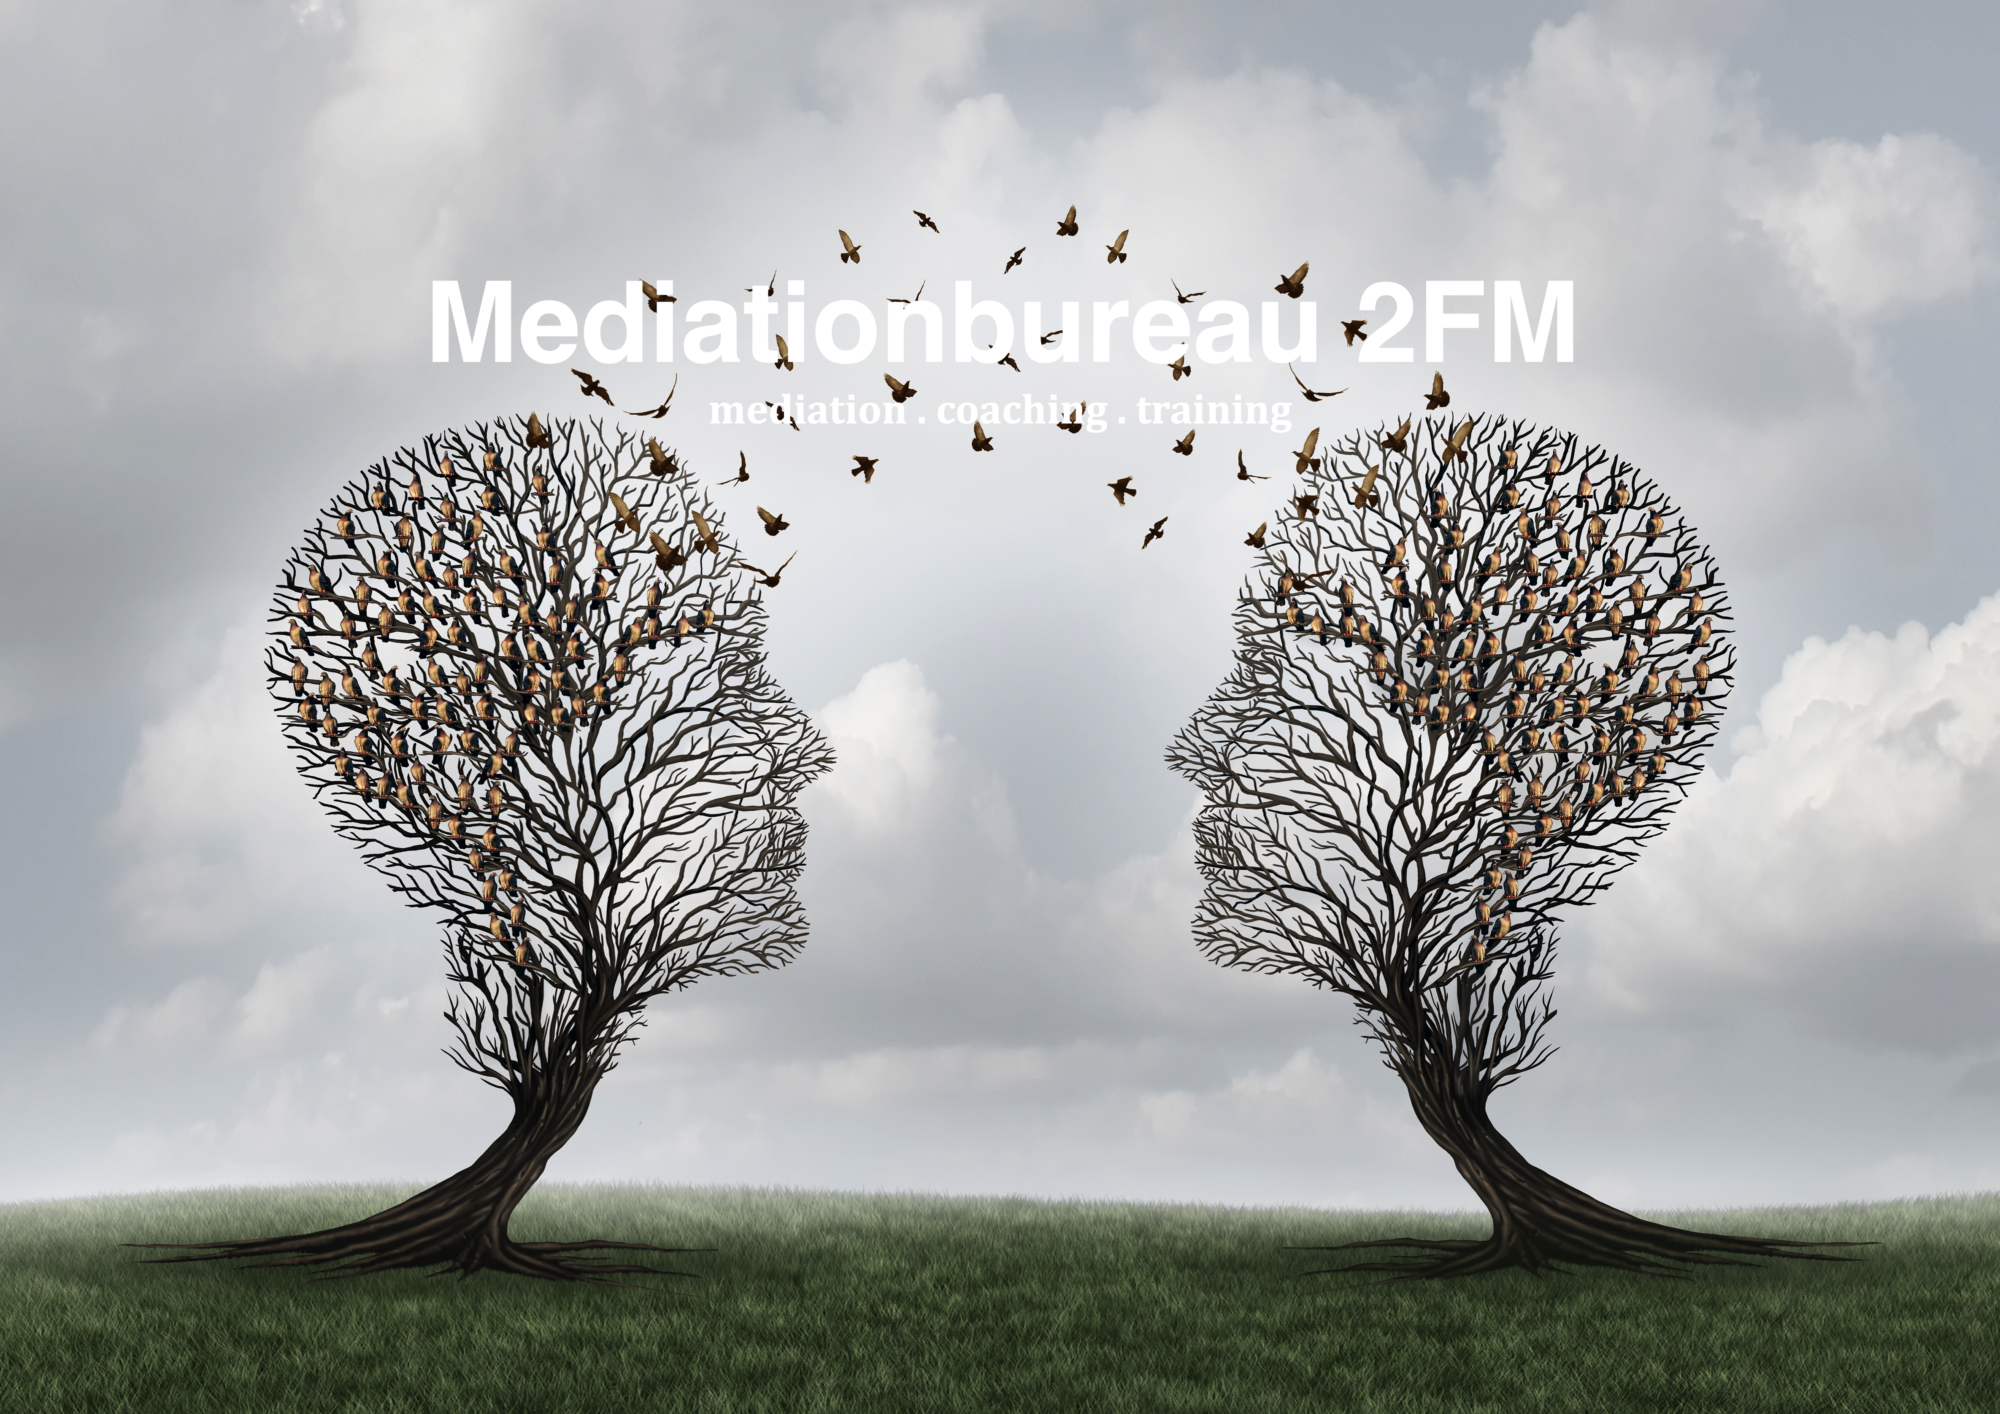 ARBEIDSMEDIATION . HERSTELMEDIATION . SCHEIDING EN FAMILIE MEDIATION . ZAKELIJKE MEDIATION